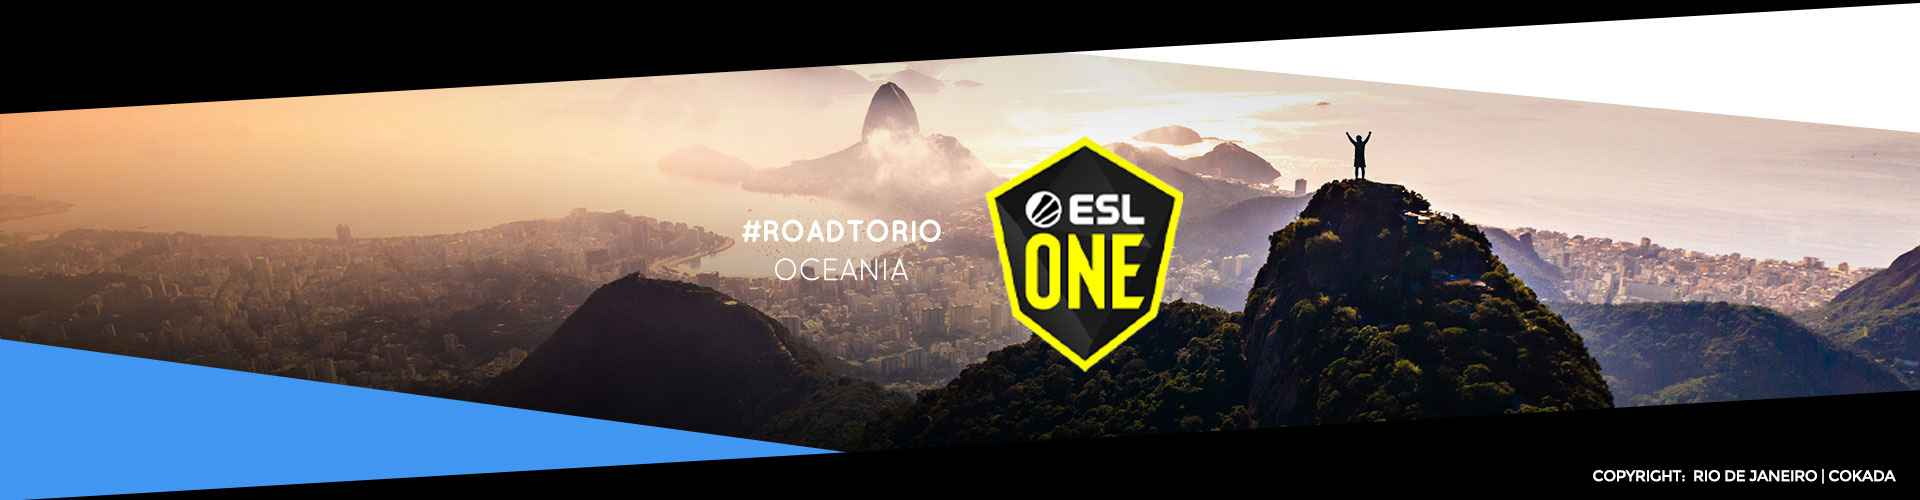 Road to Rio Oceania